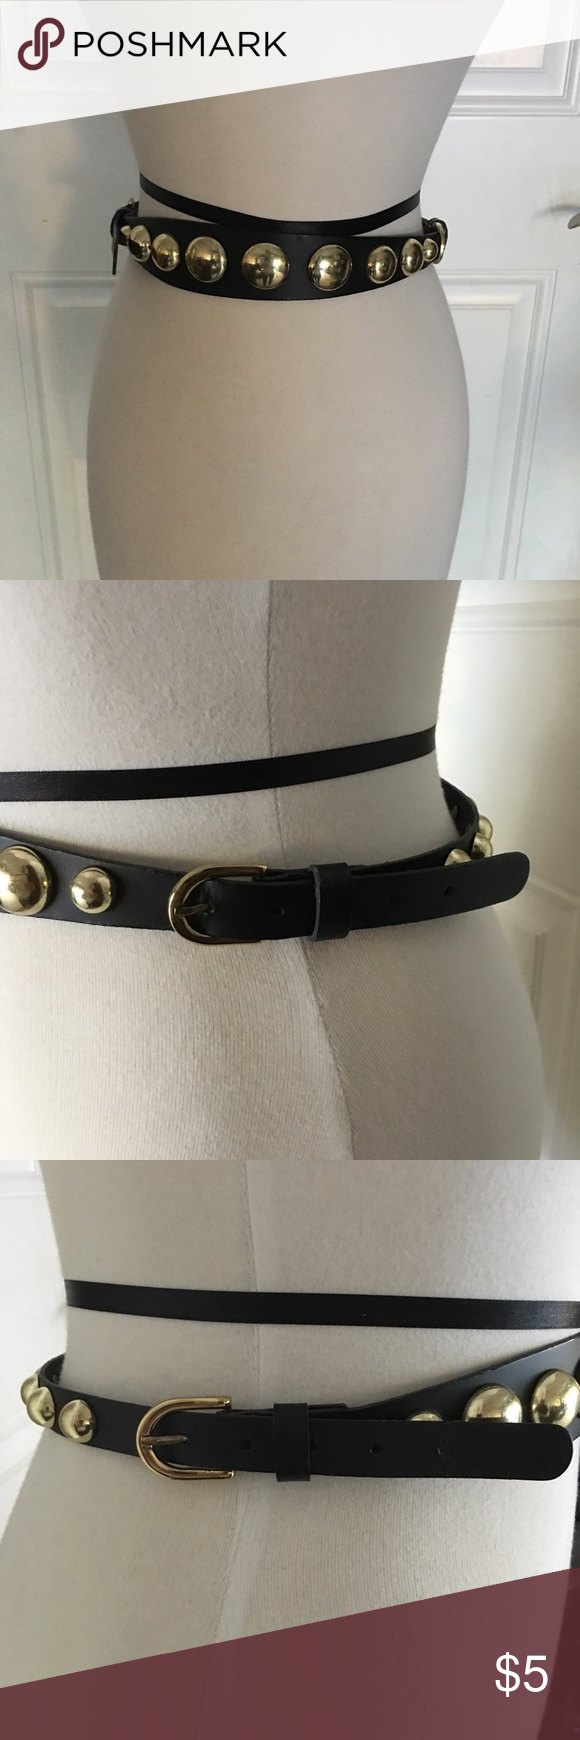 H&M Gold and Black Belt This belt has Buckles in each side to be adjustable. The one side has large circle metal details and the other side has smaller ones so you have an option on which you want. I would say it fits a small it Med. H&M Accessories Belts